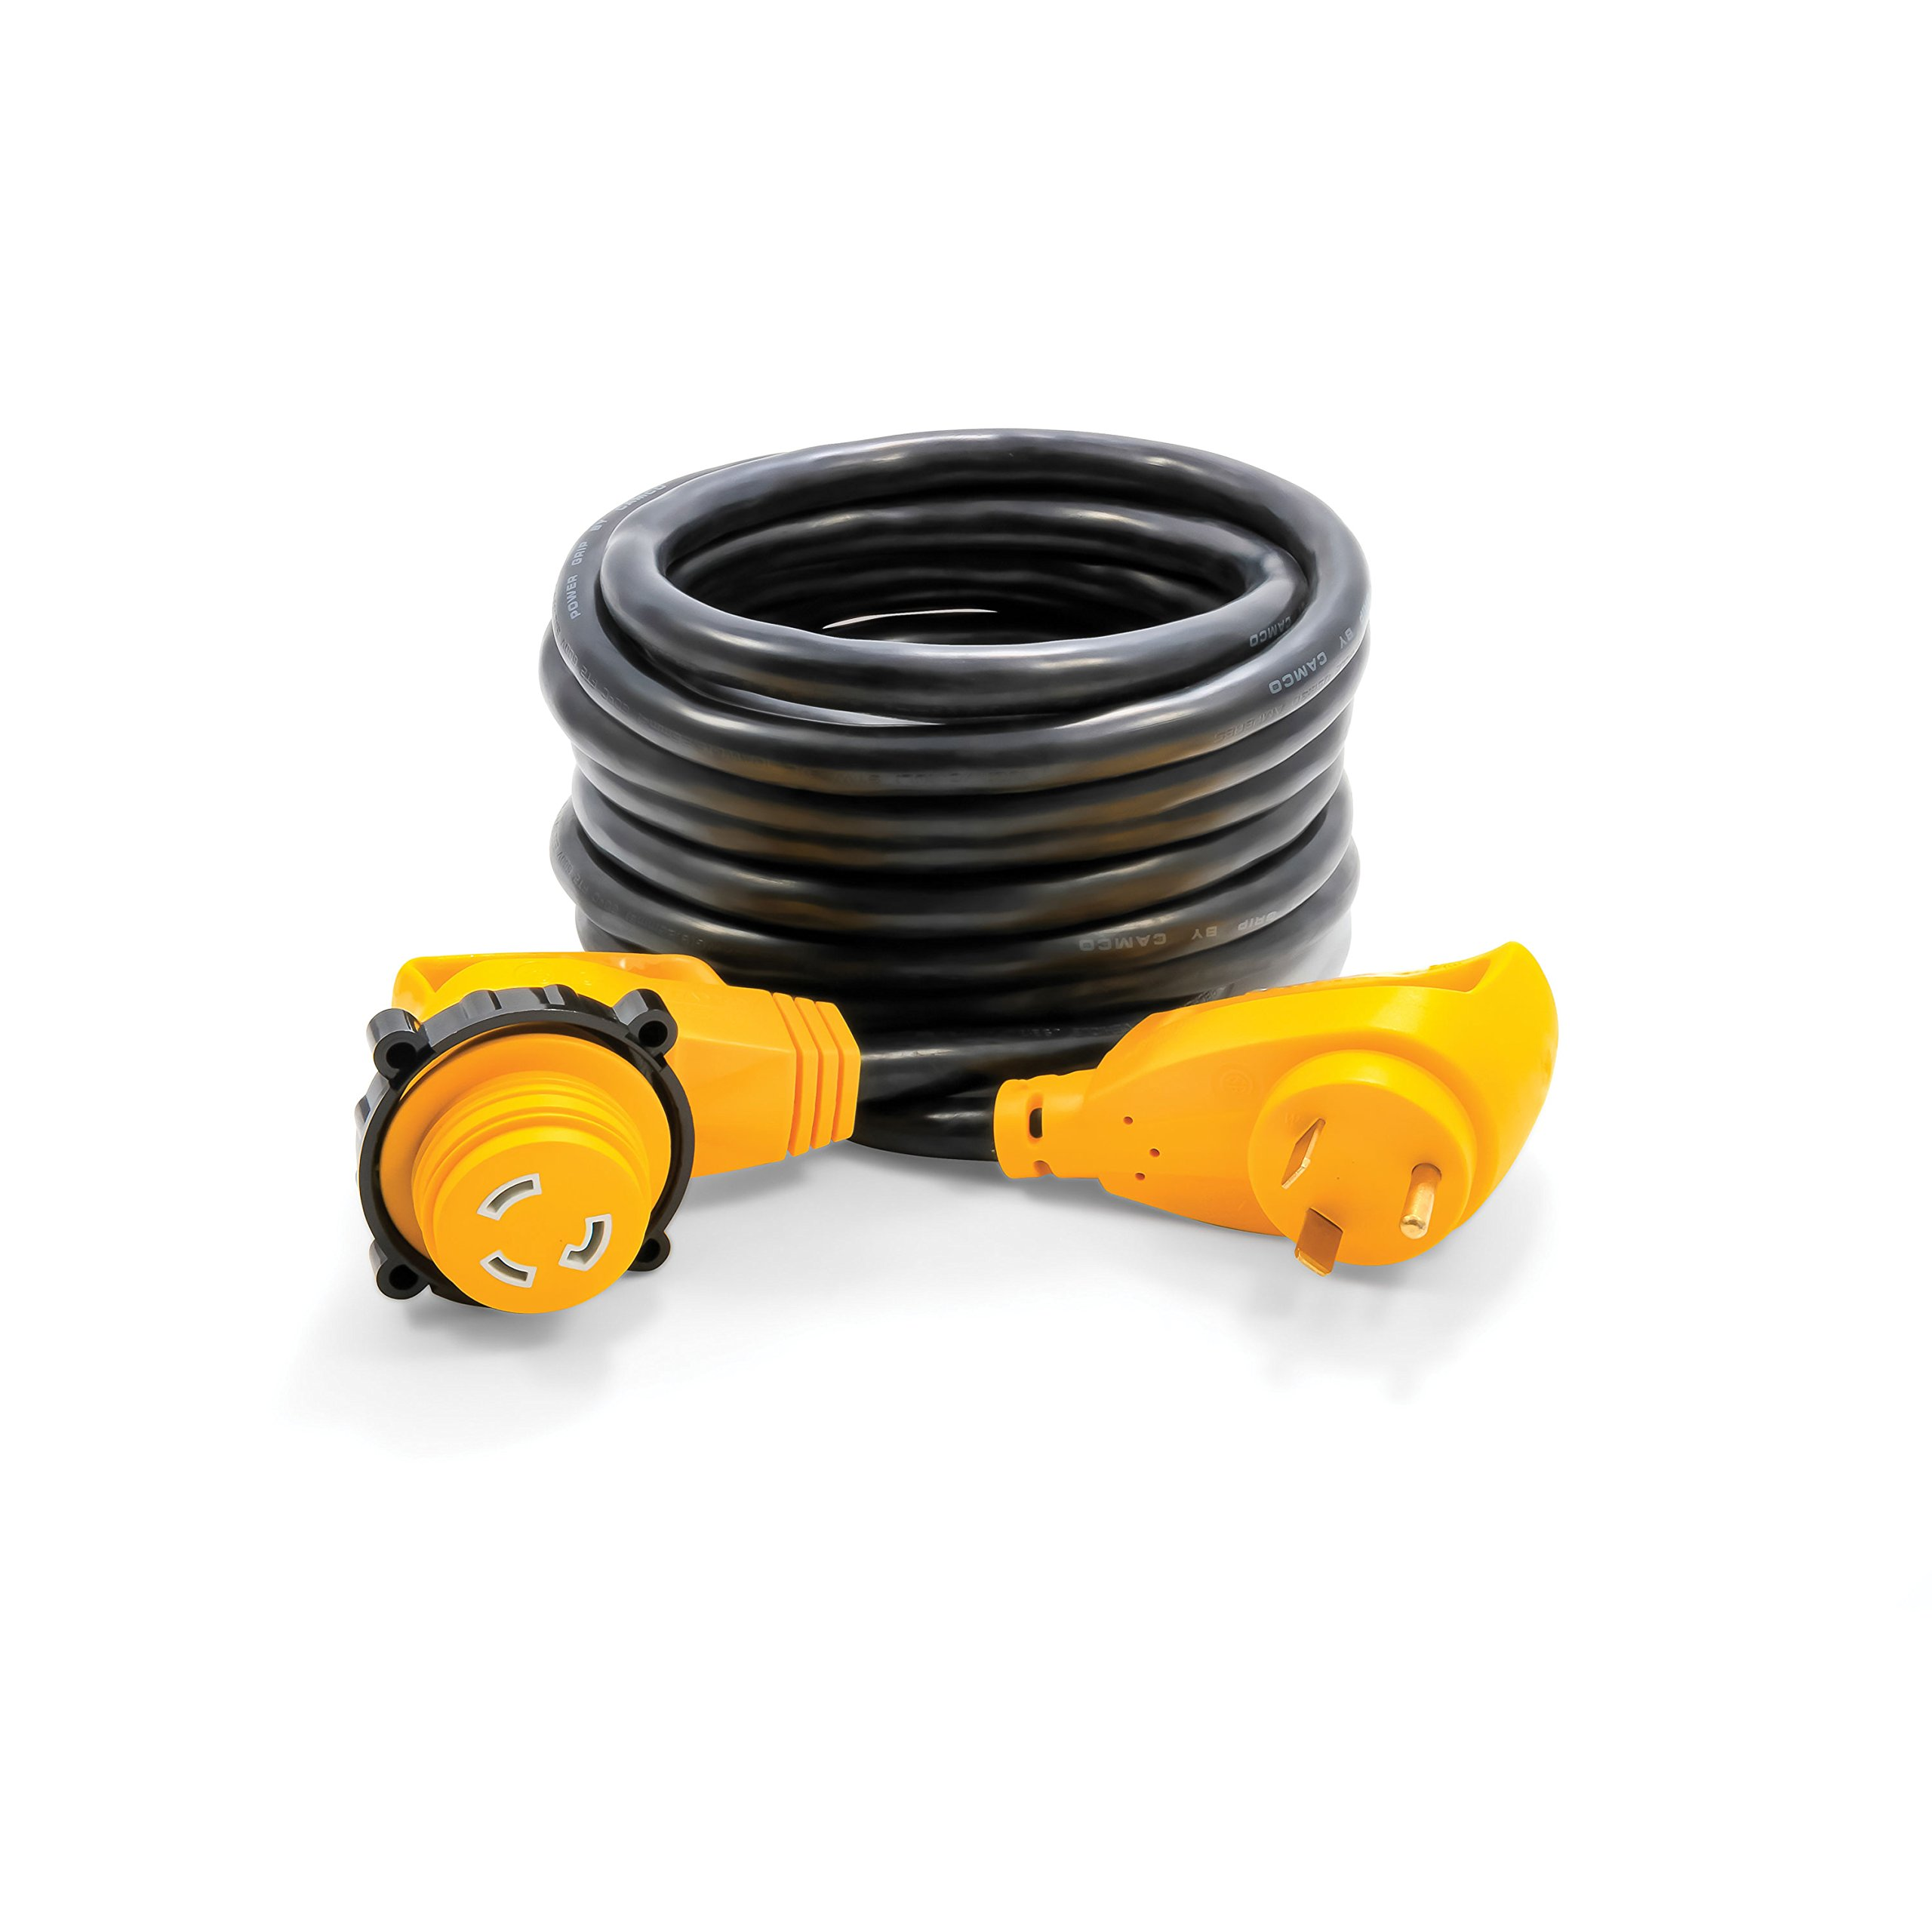 Camco Heavy Duty 25' 30 Amp Power Grip Extension Cord with 90M/90F Locking Adapter - Threaded Locking Ring Ensures a Weatherproof Connection (55524)